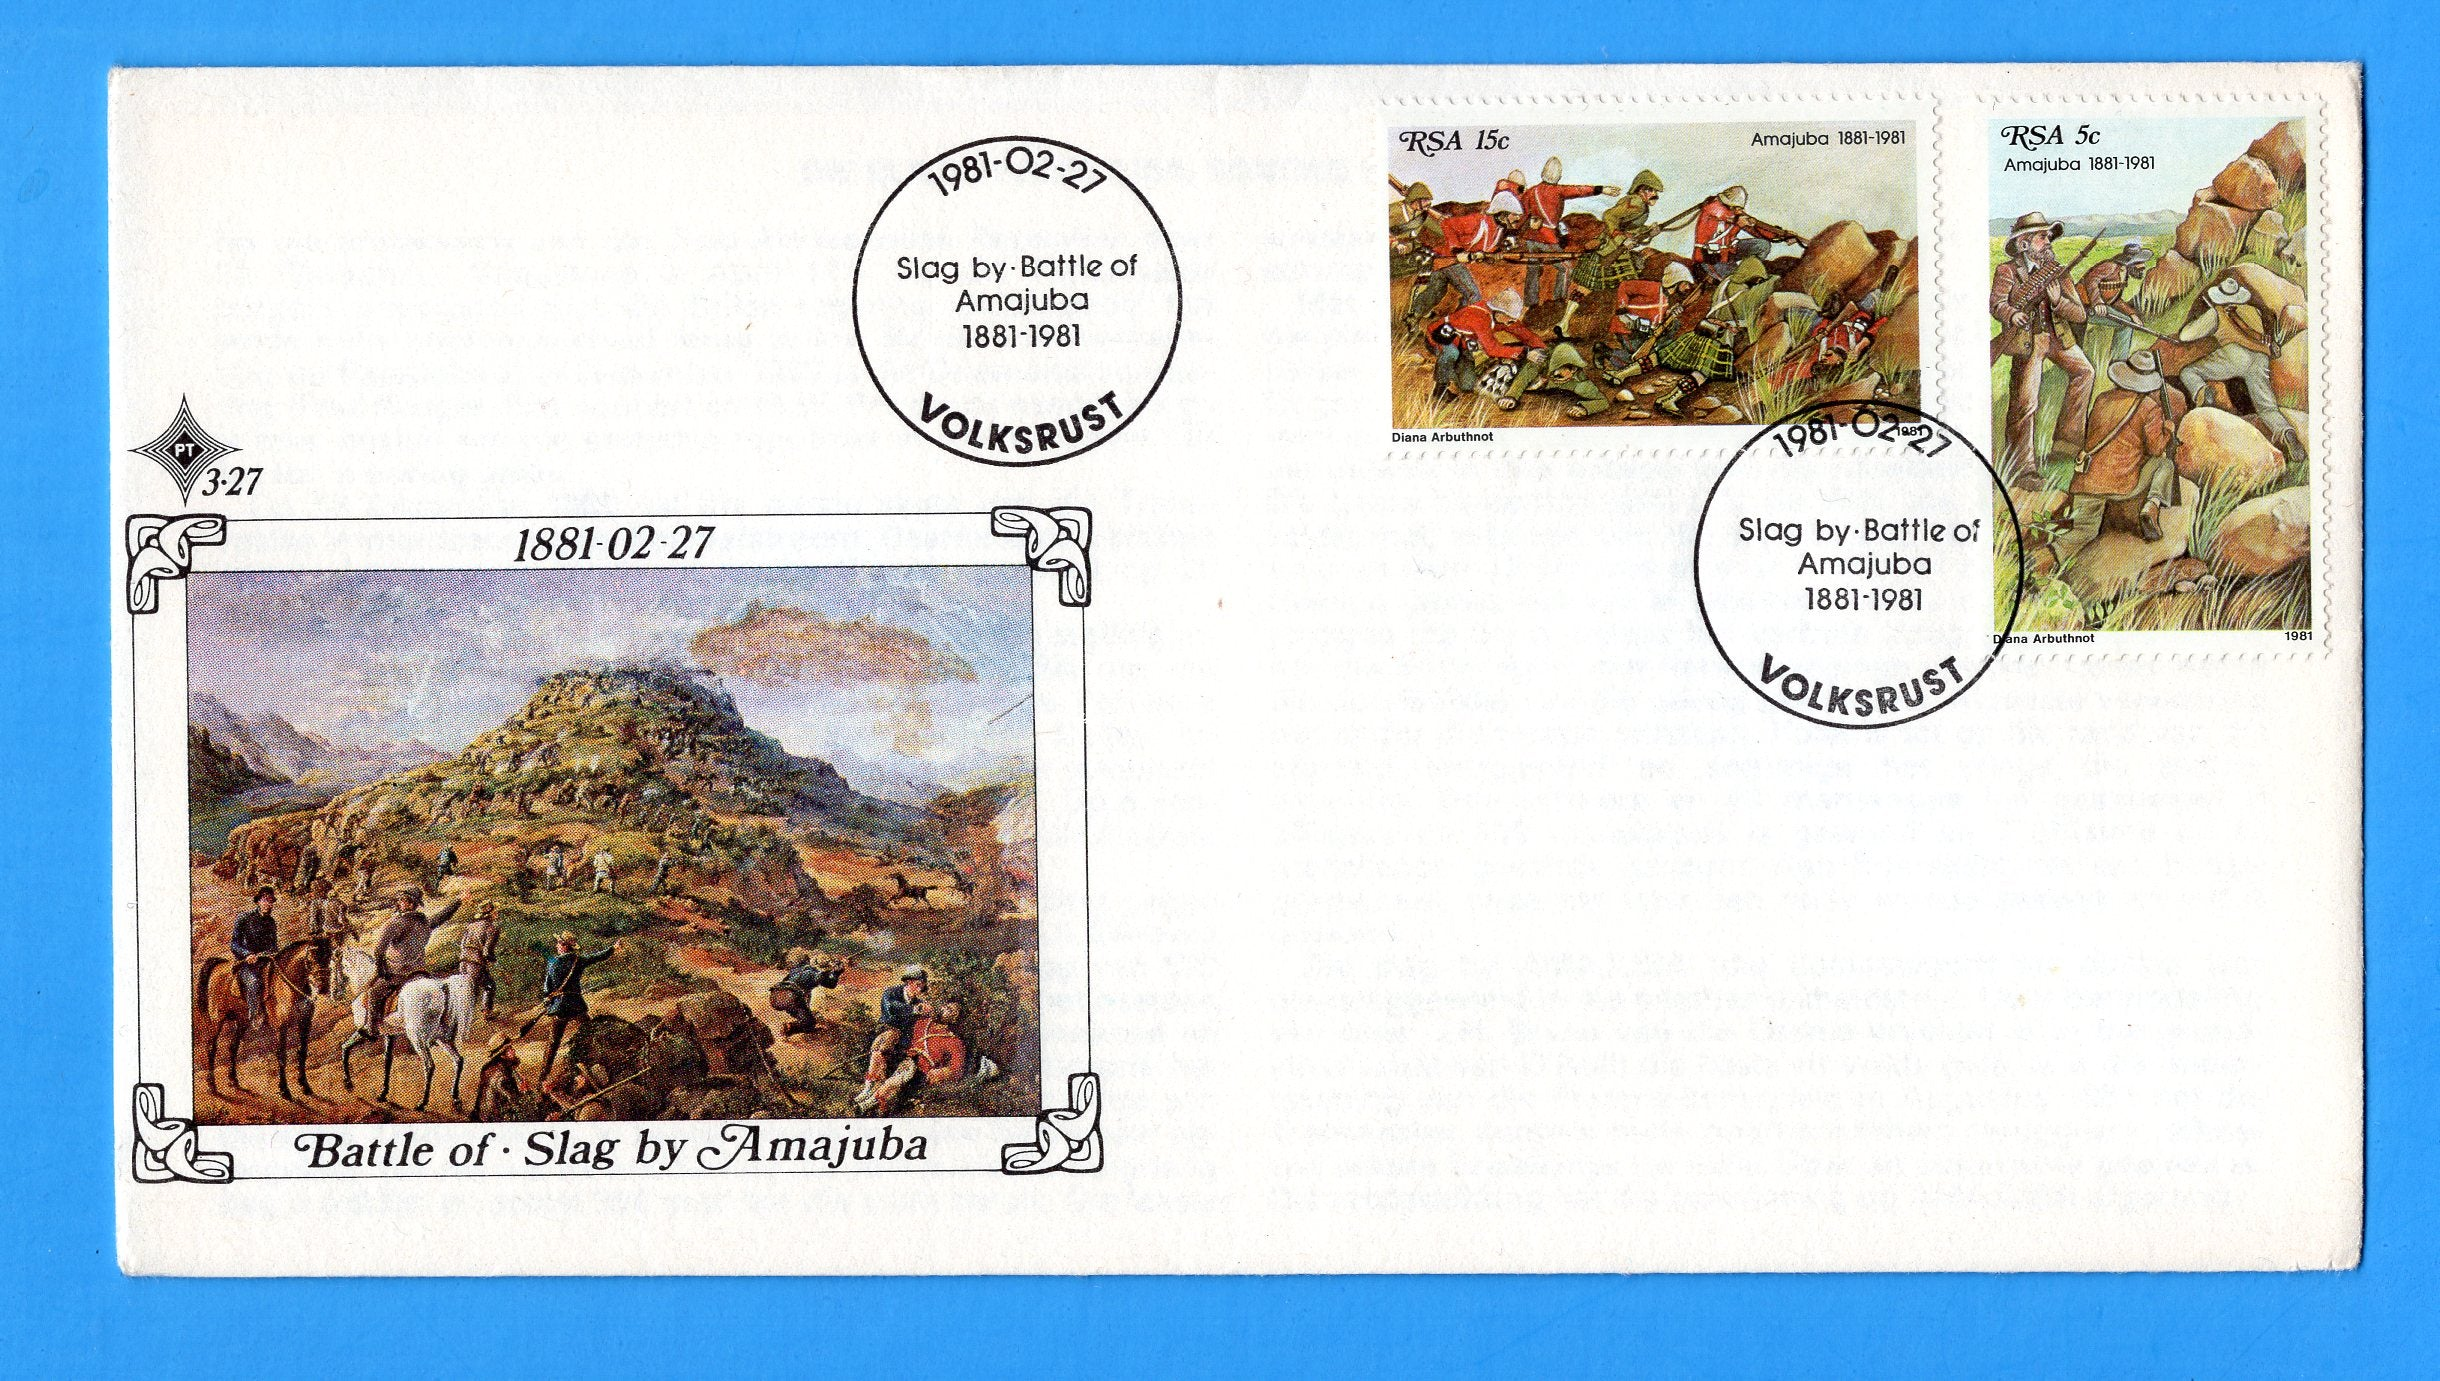 Scott 545 South Africa First Day Cover Battle of Slag by Amajuba February 27, 1981